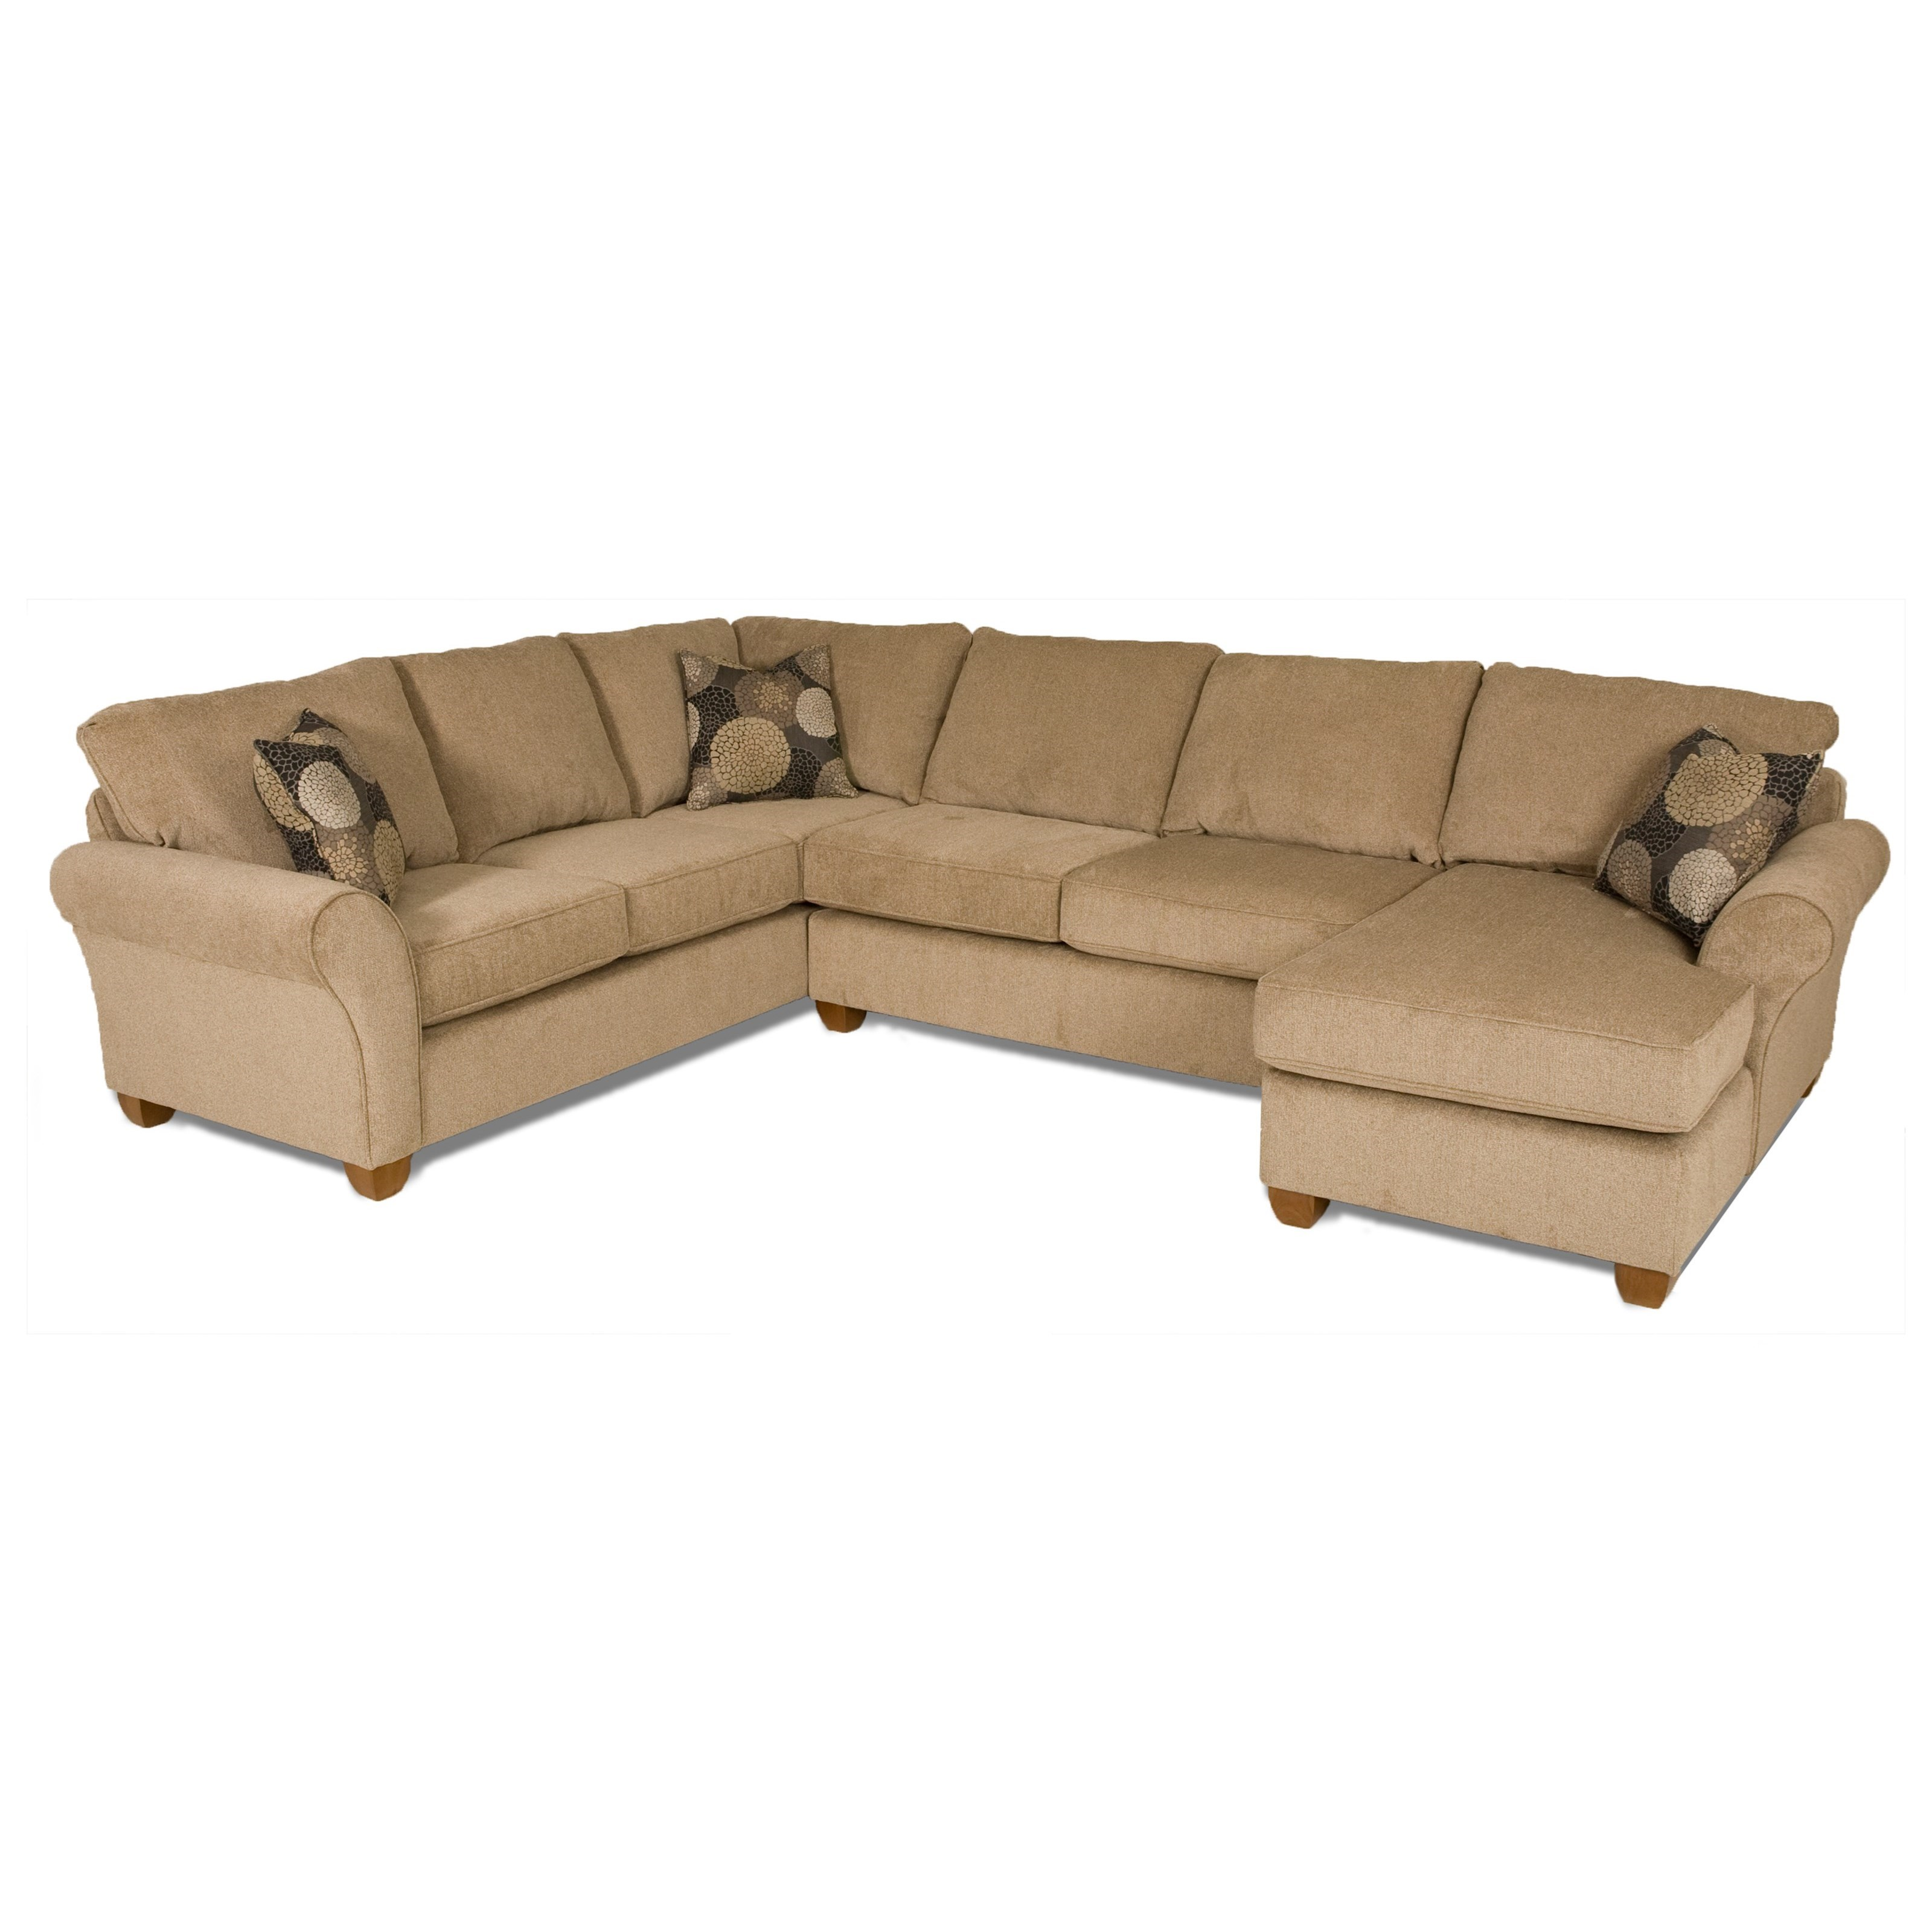 520 Sectional by Stanton at Wilson's Furniture